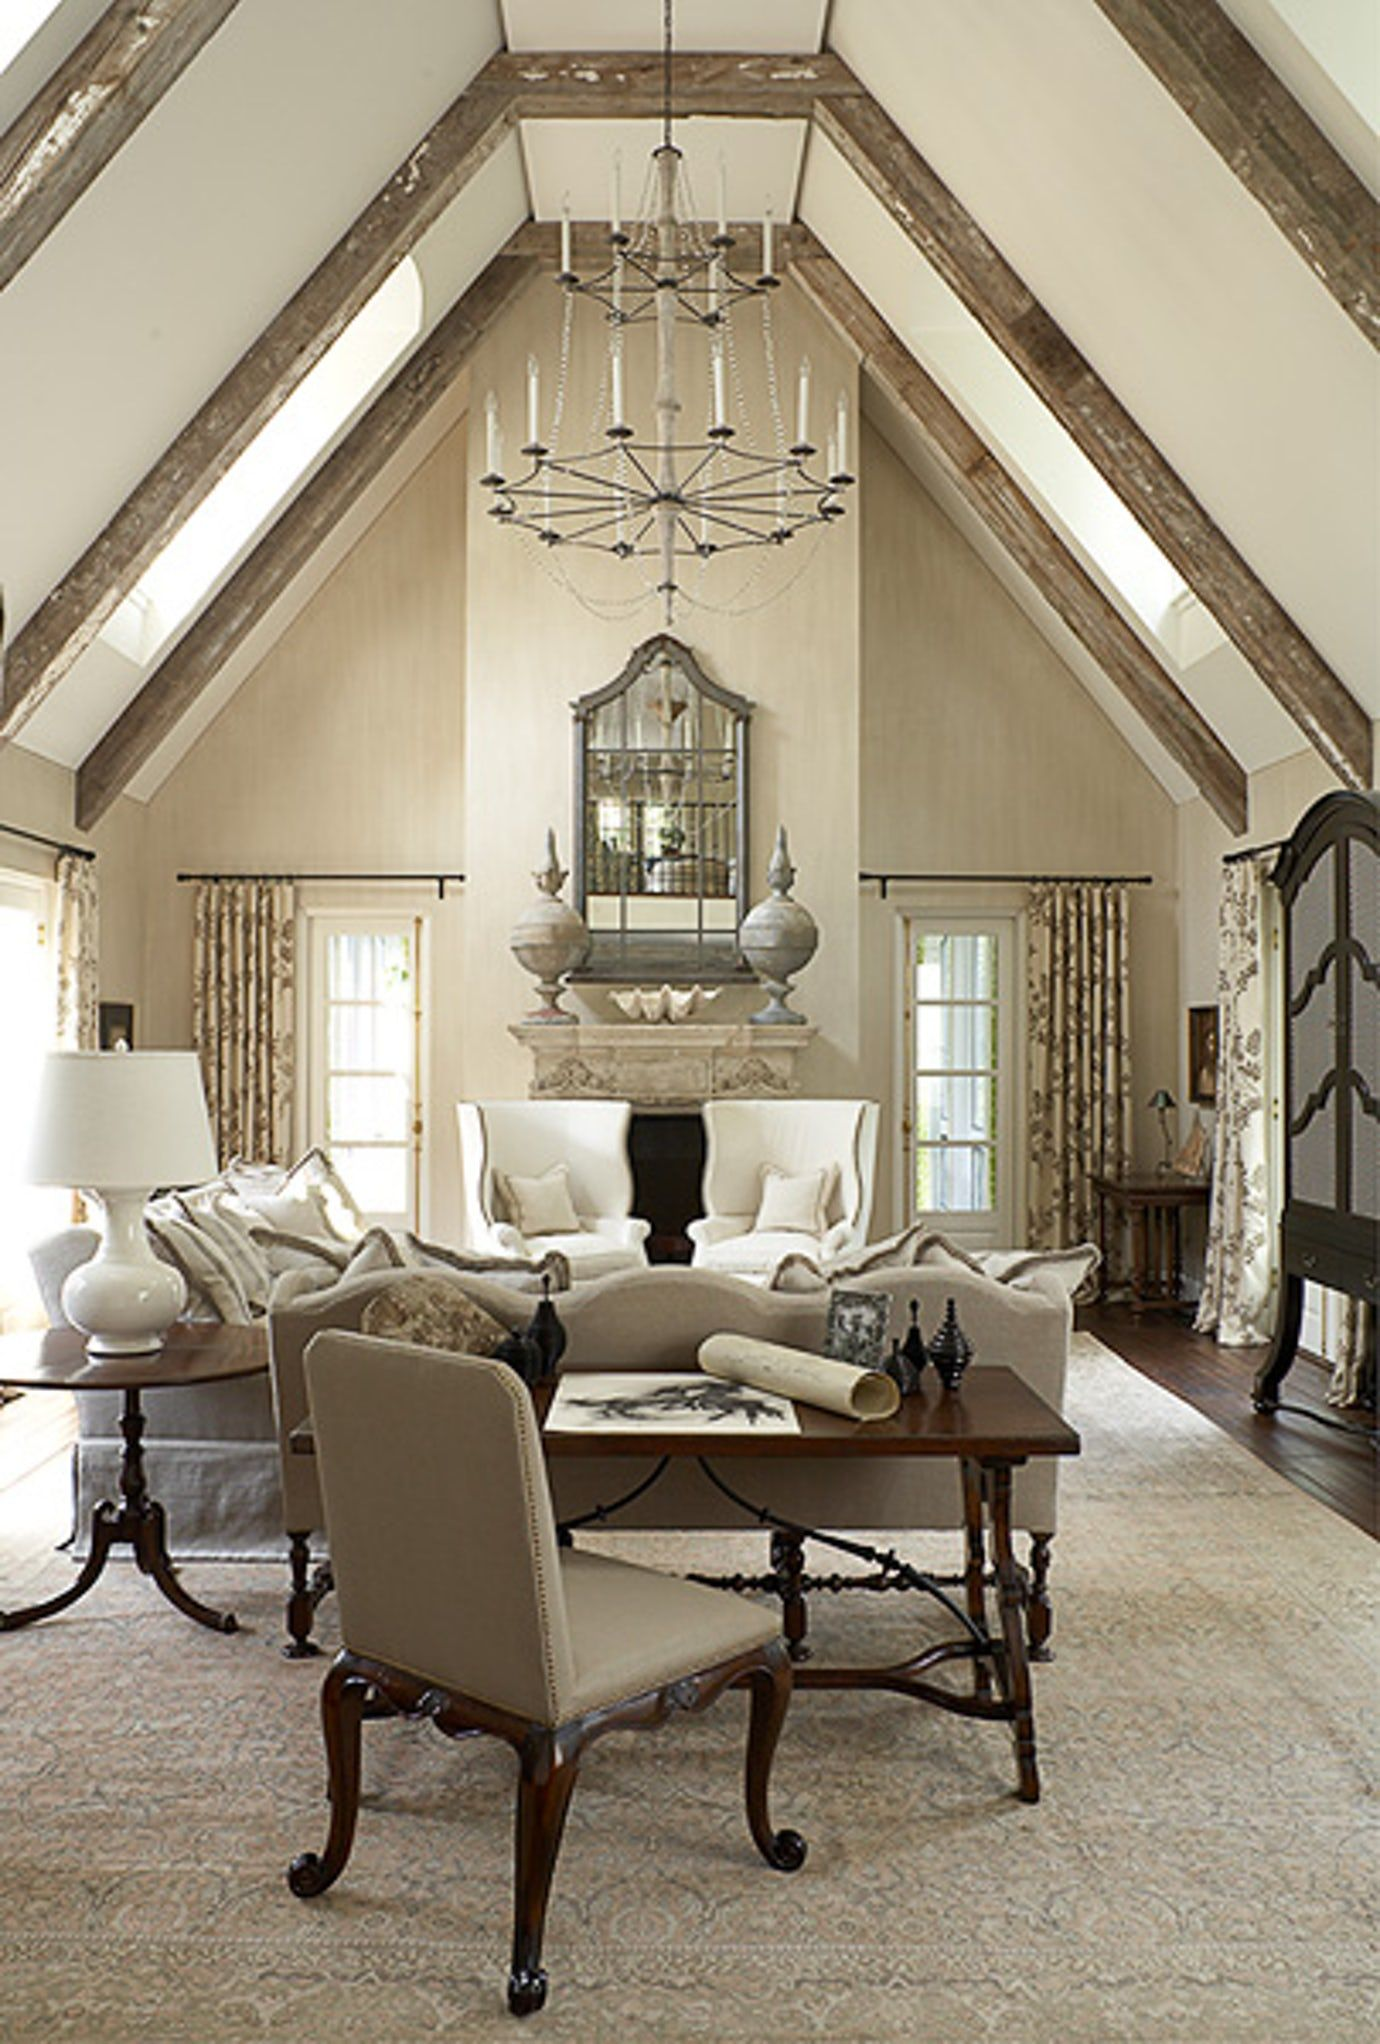 Great Room French Provincial Transitional by Frank Ponterio Interior